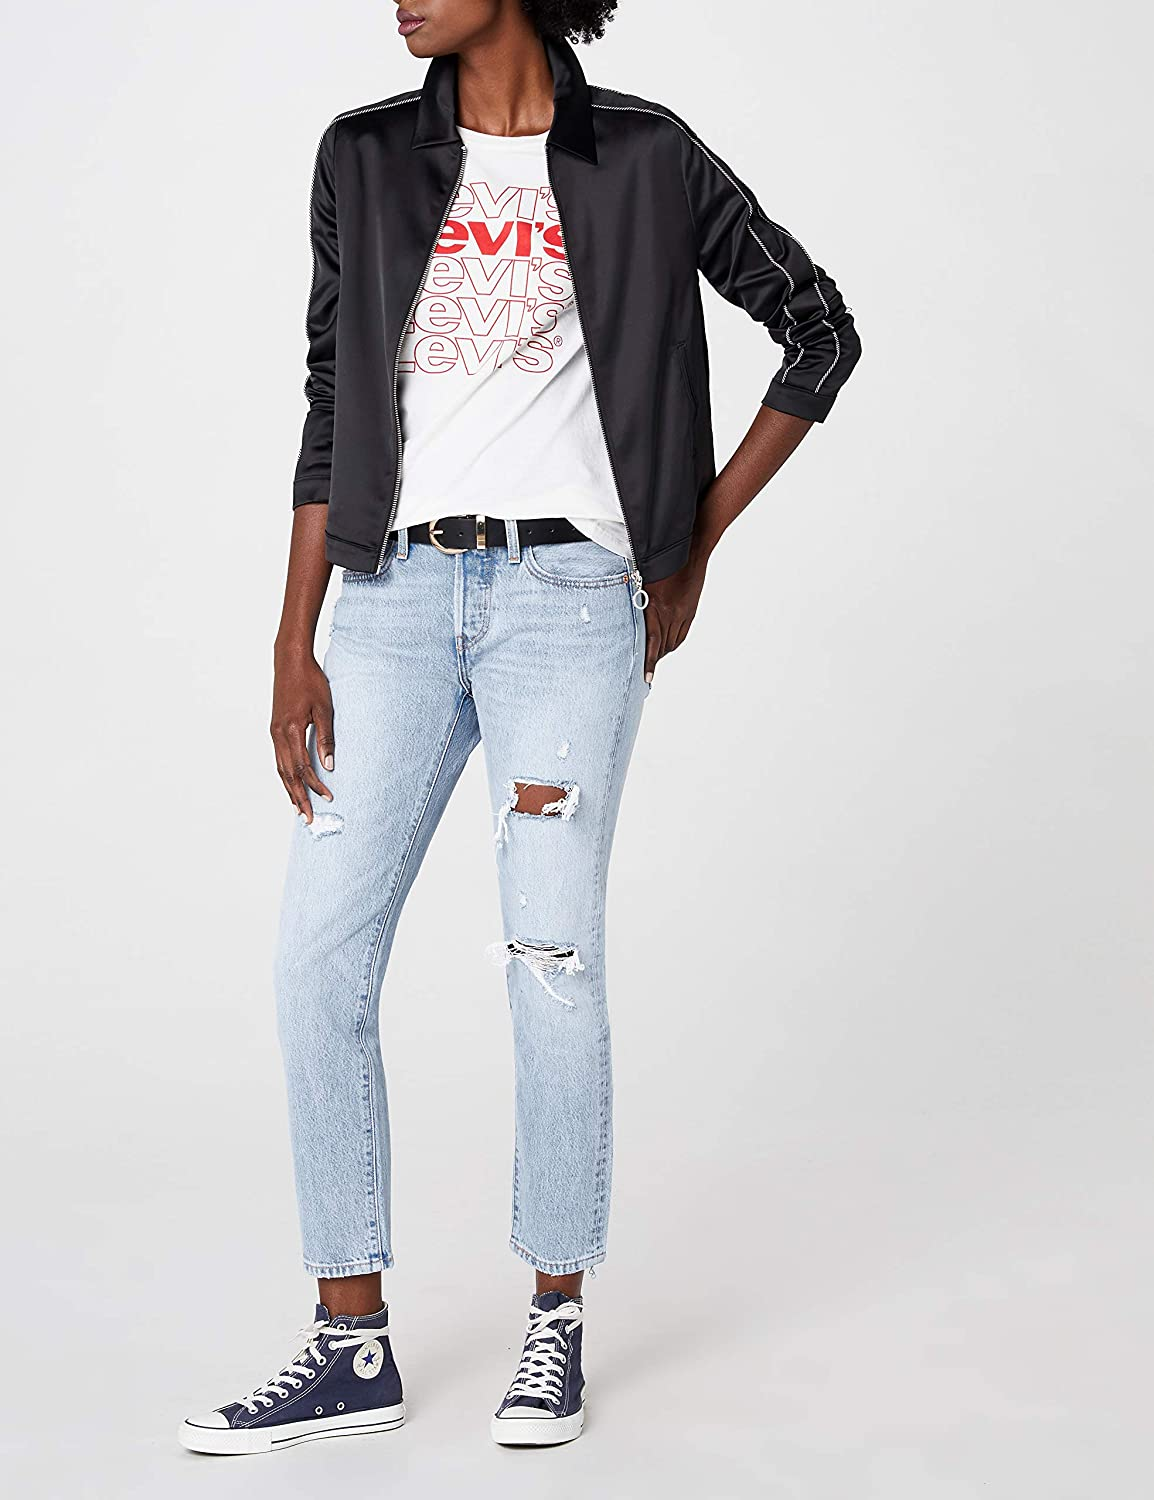 Levi's 501 Taper Jean Droit Dames So Called Life